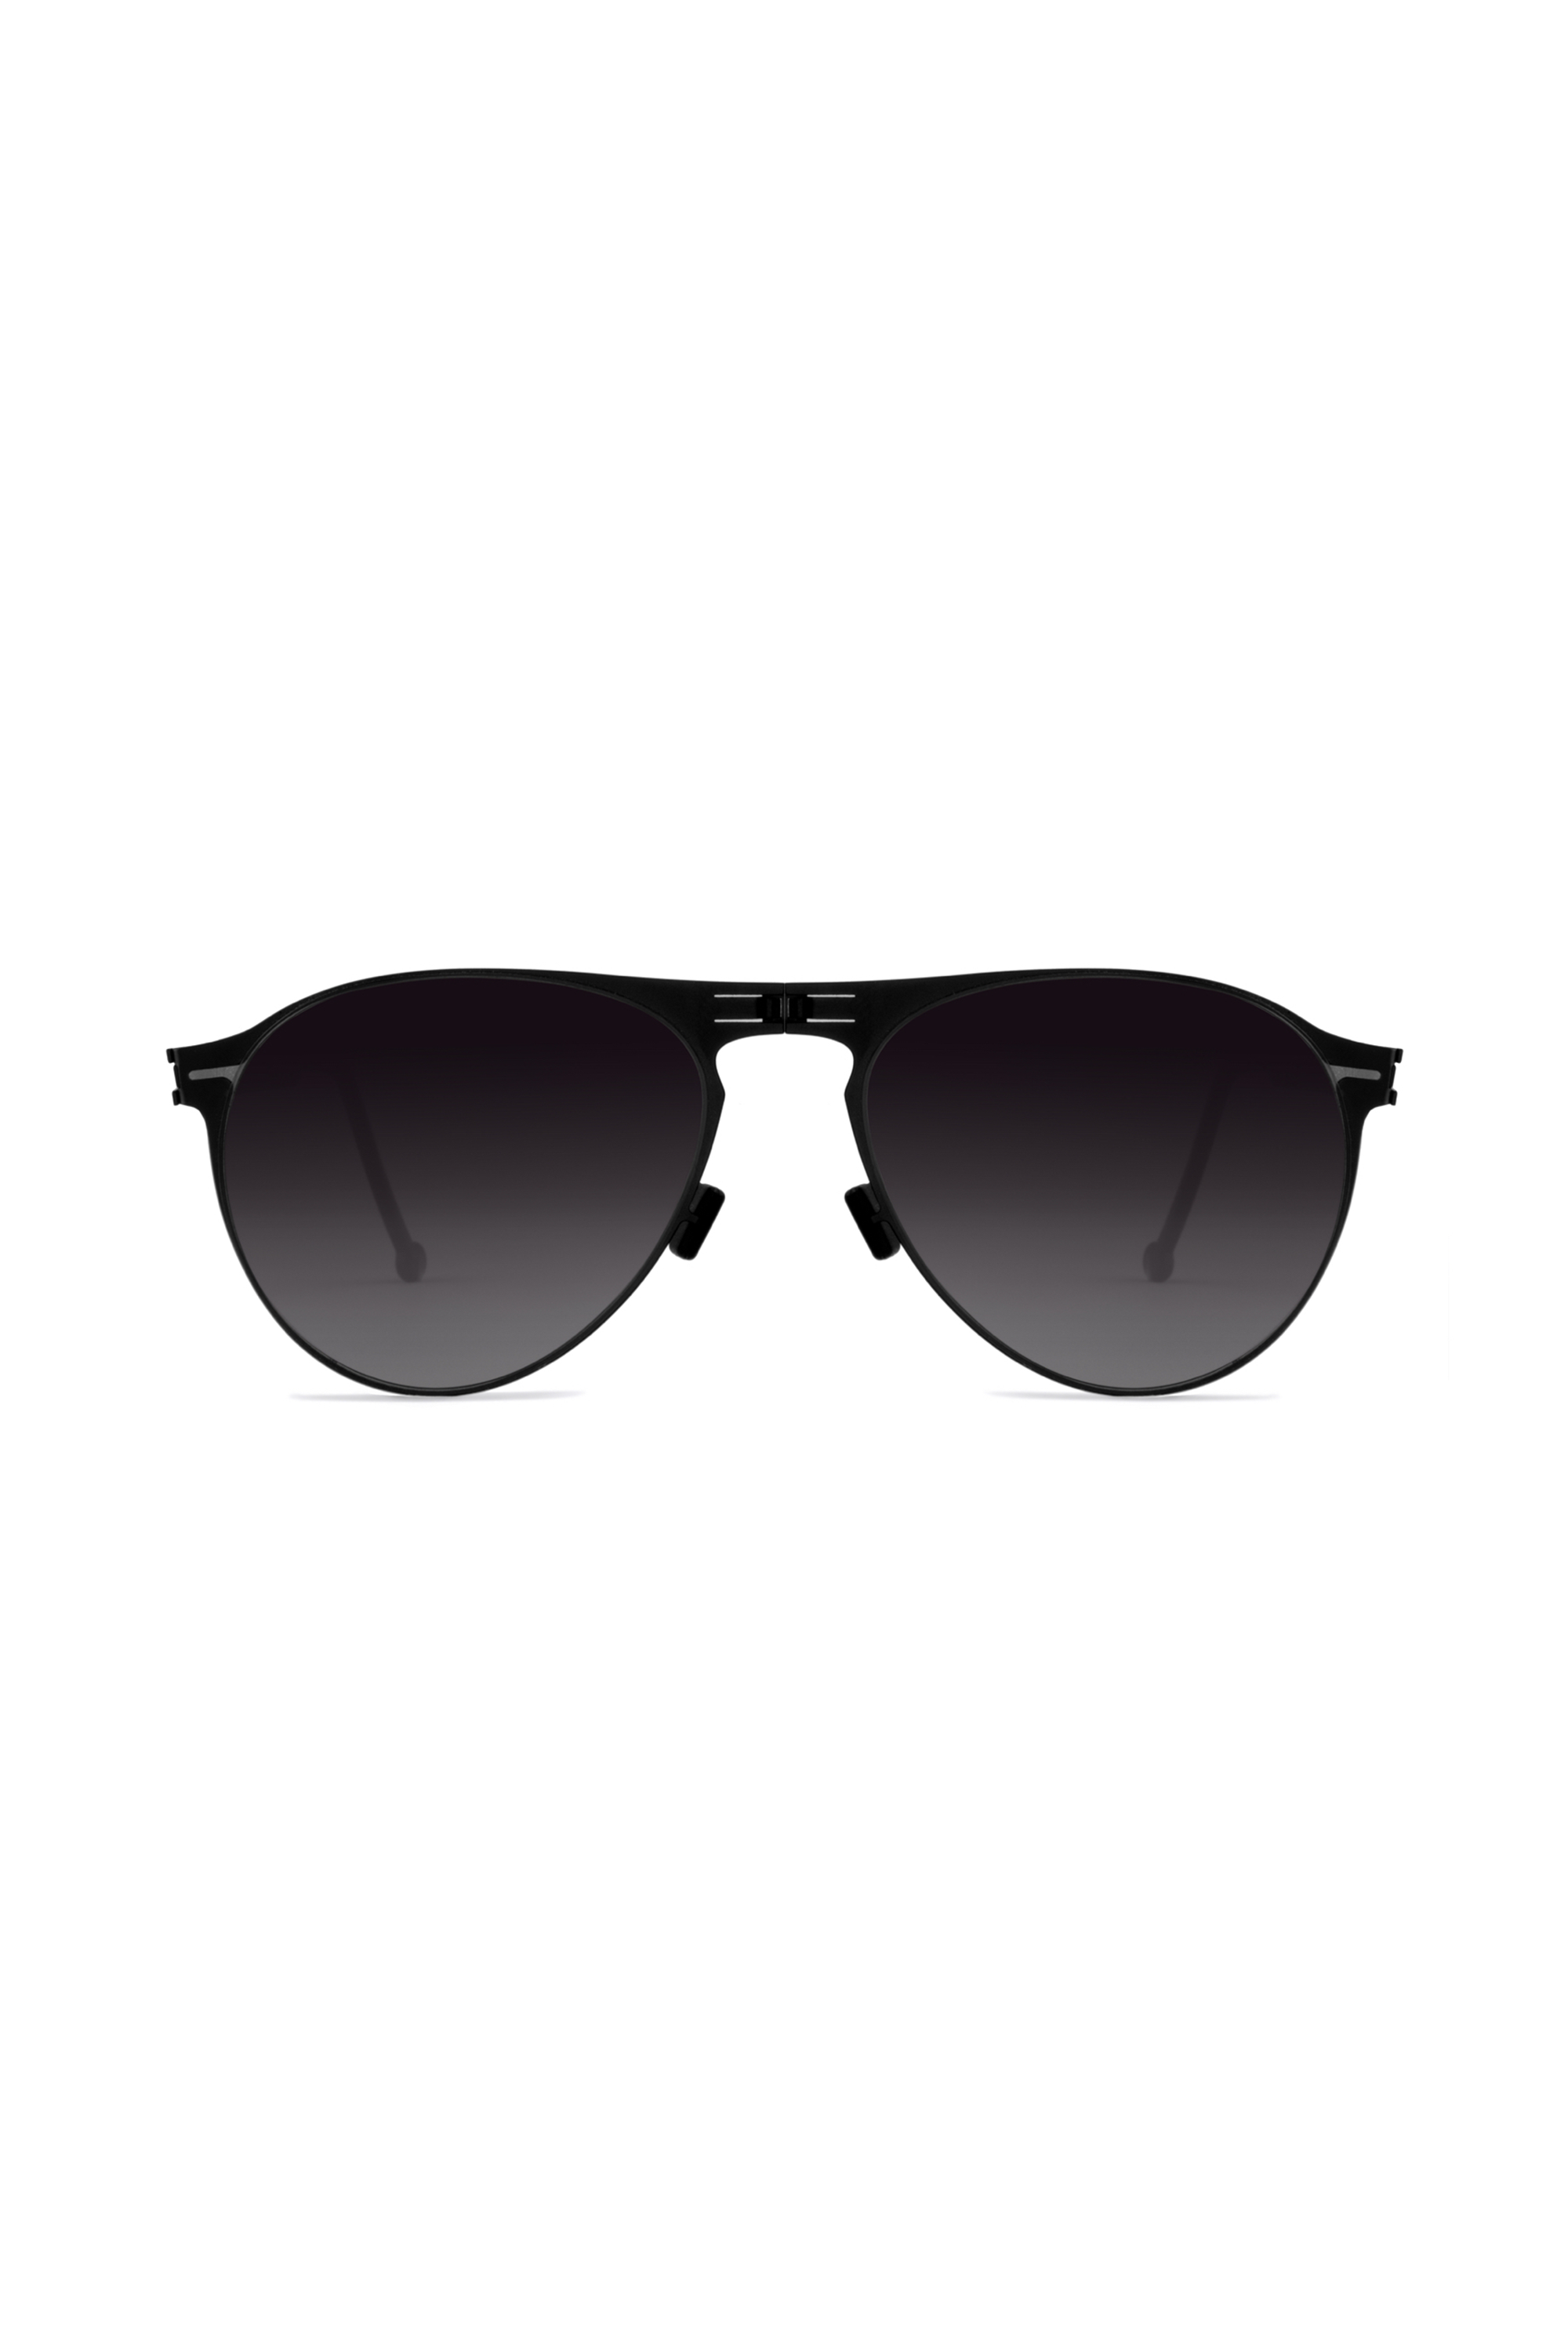 ROAV Folding Sunglasses - Earhart